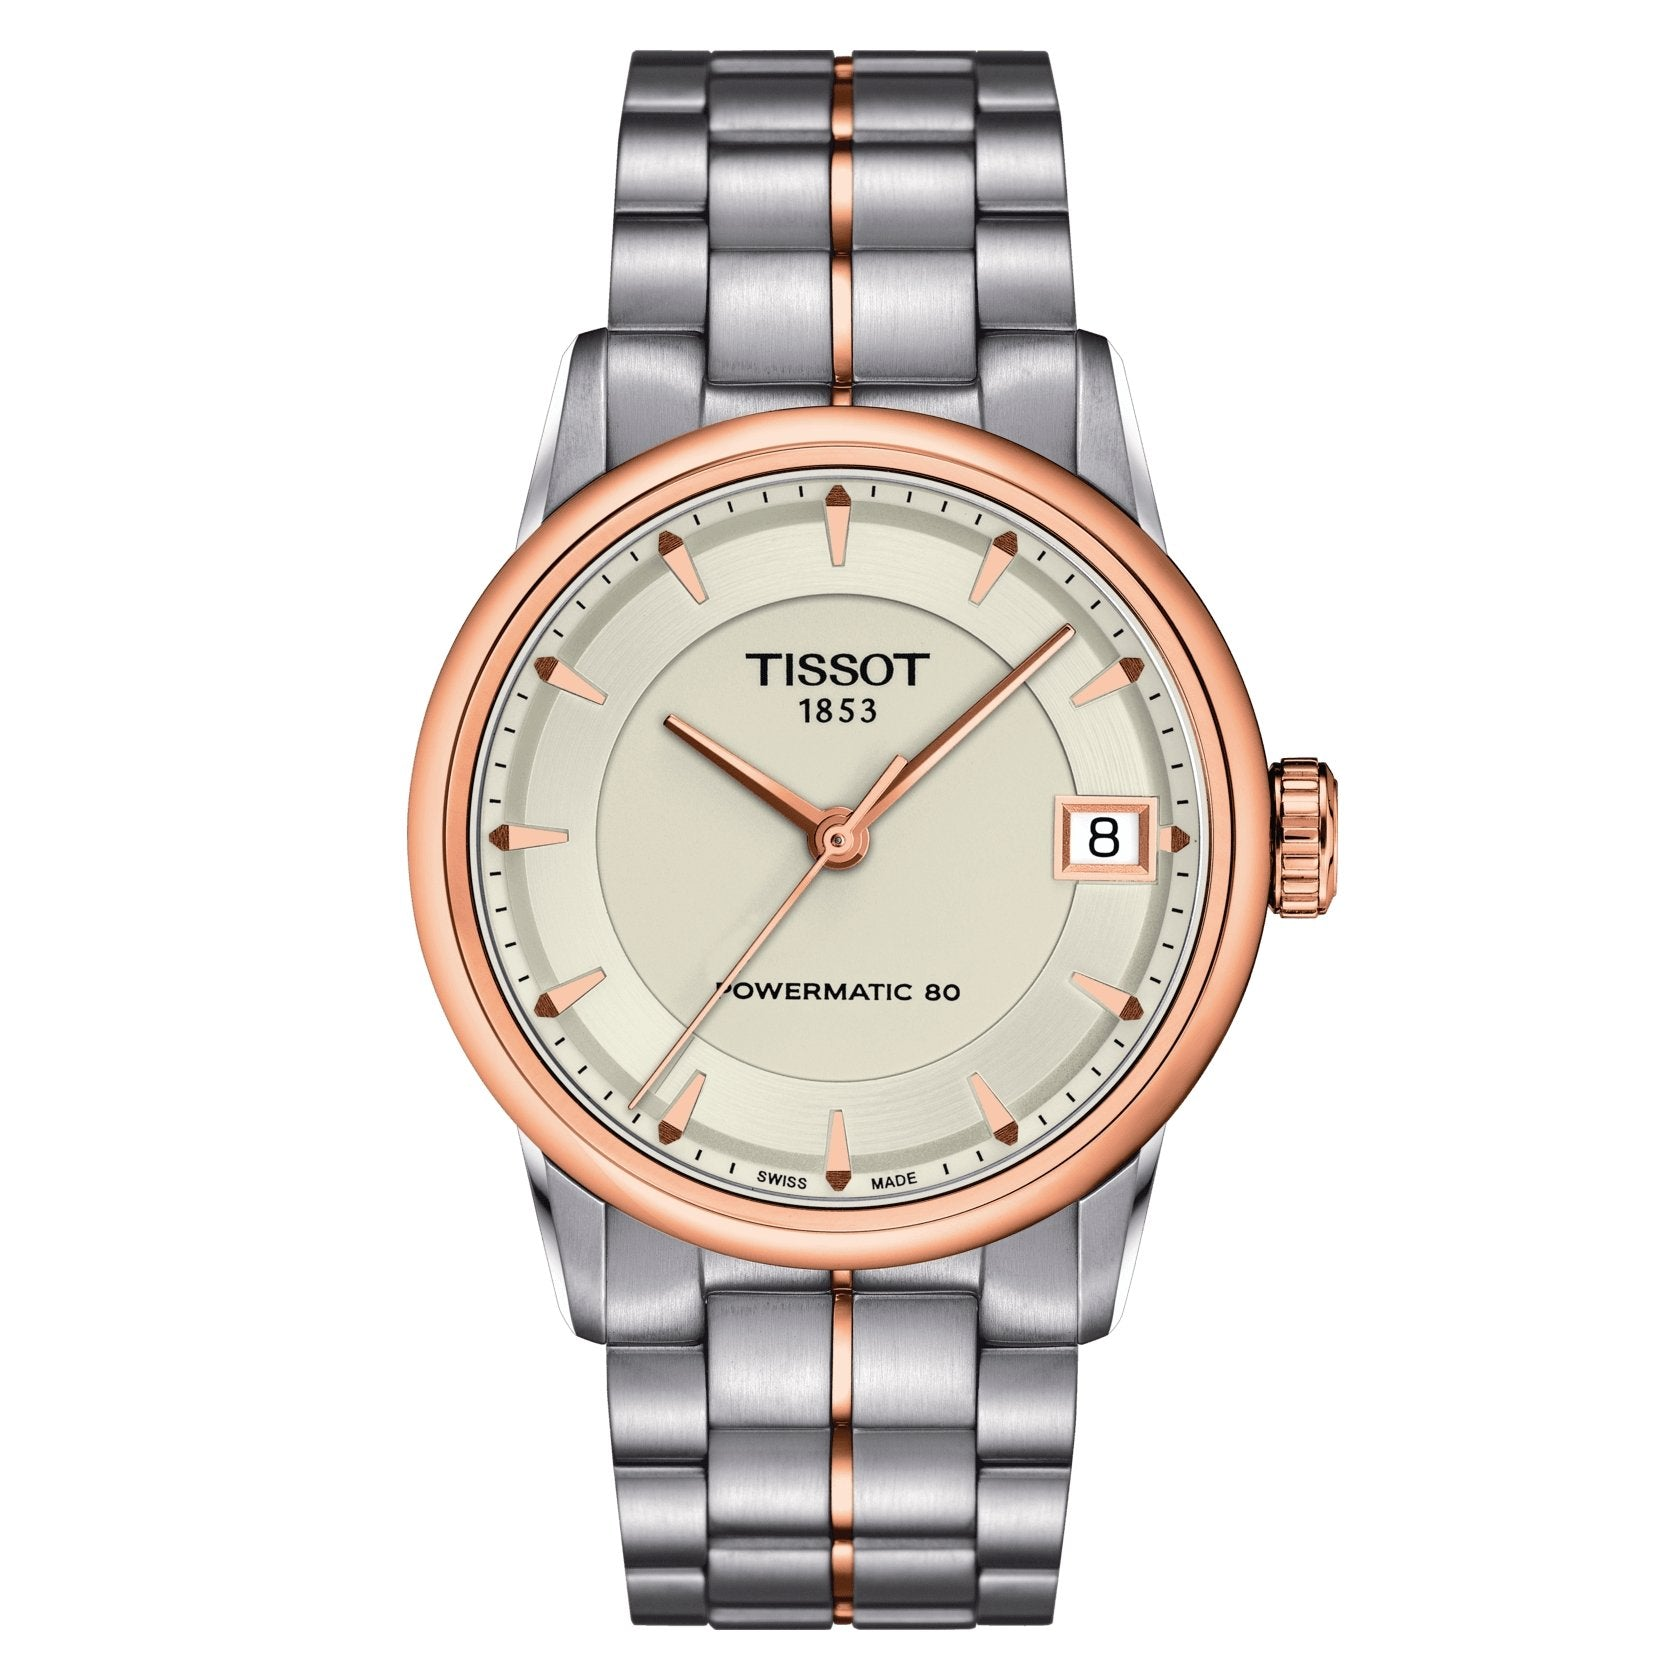 Tissot T-Classic Powermatic 80 Ivory Gold - Watches & Crystals